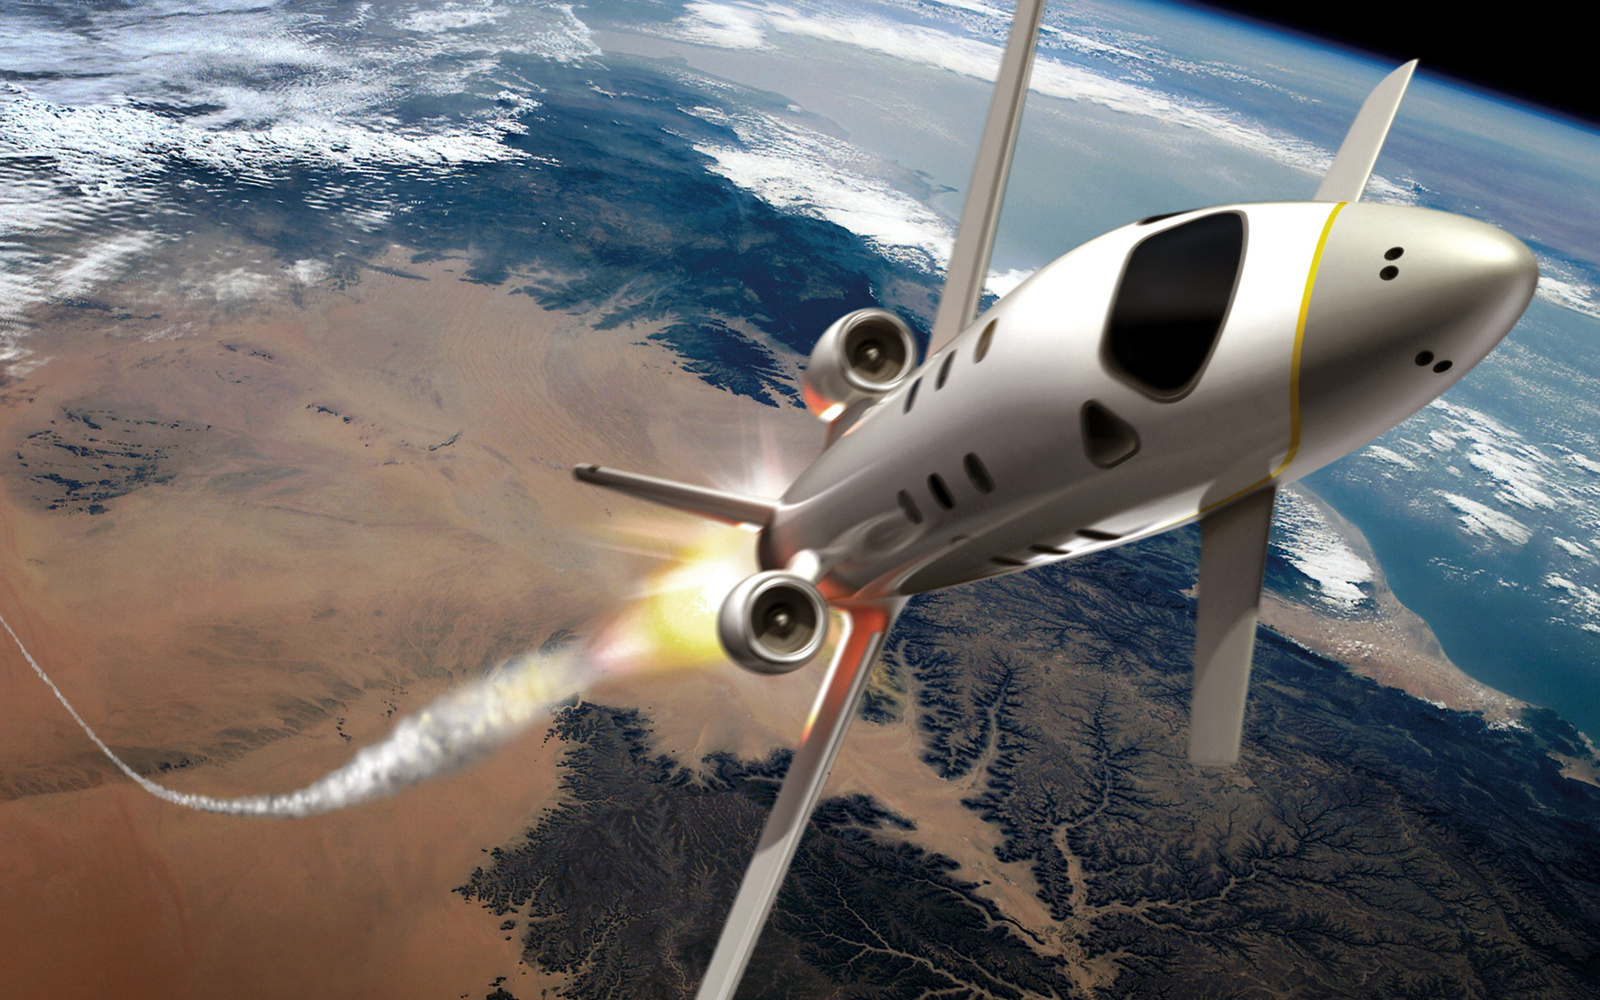 Europe's Suborbital Space Plane by EADS/Airbus in Pictures (Gallery)